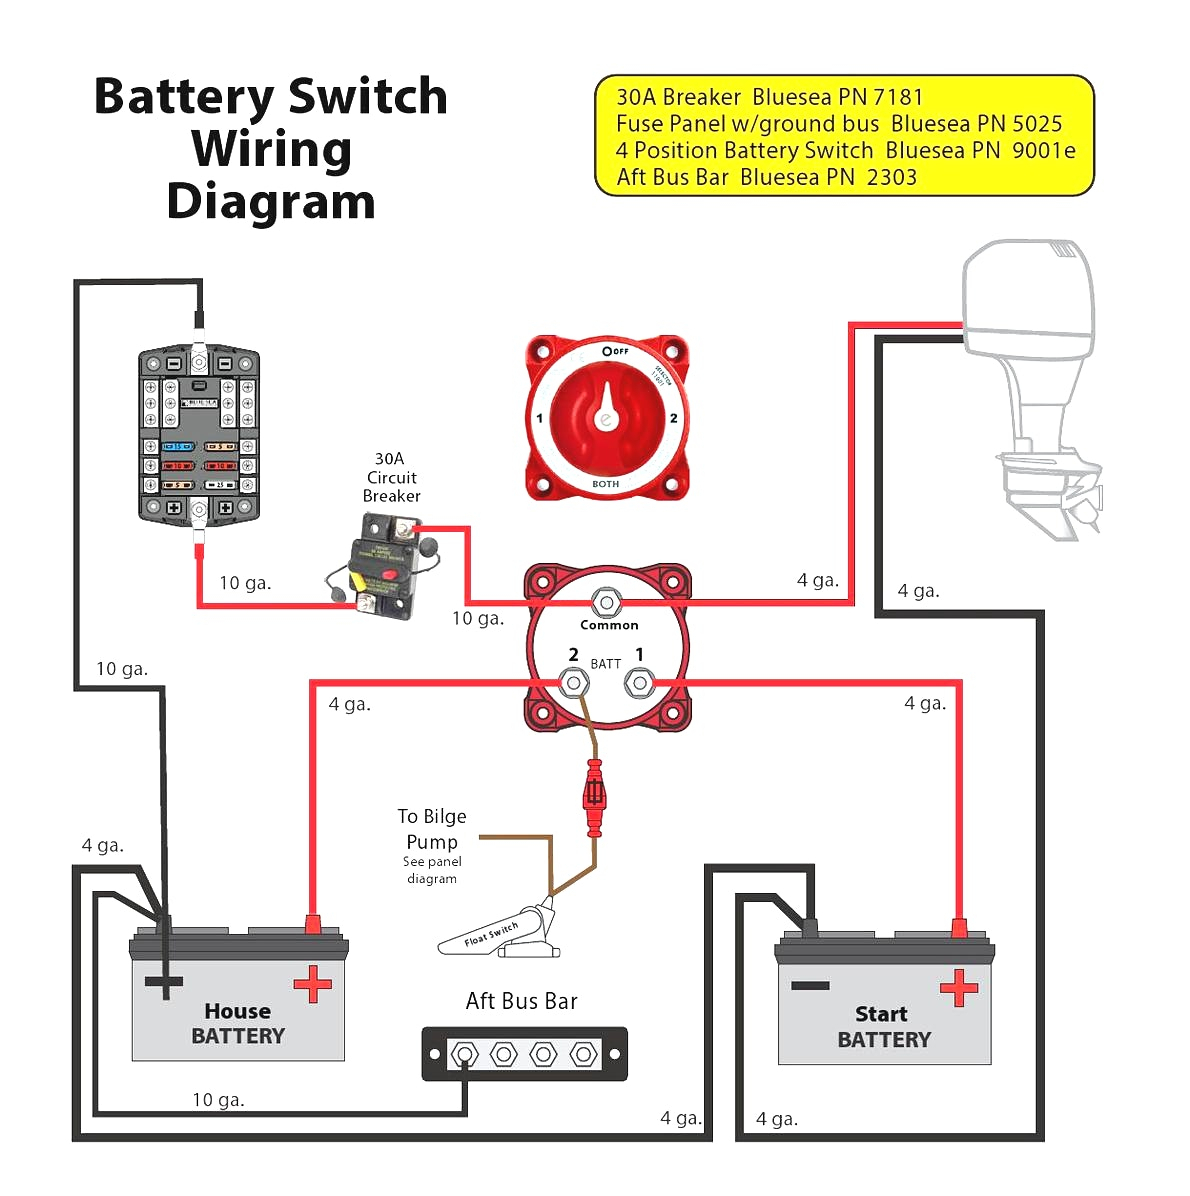 multi battery isolator wiring diagram Download-Dual Battery Isolator Wiring Diagram Simple 17 19-m